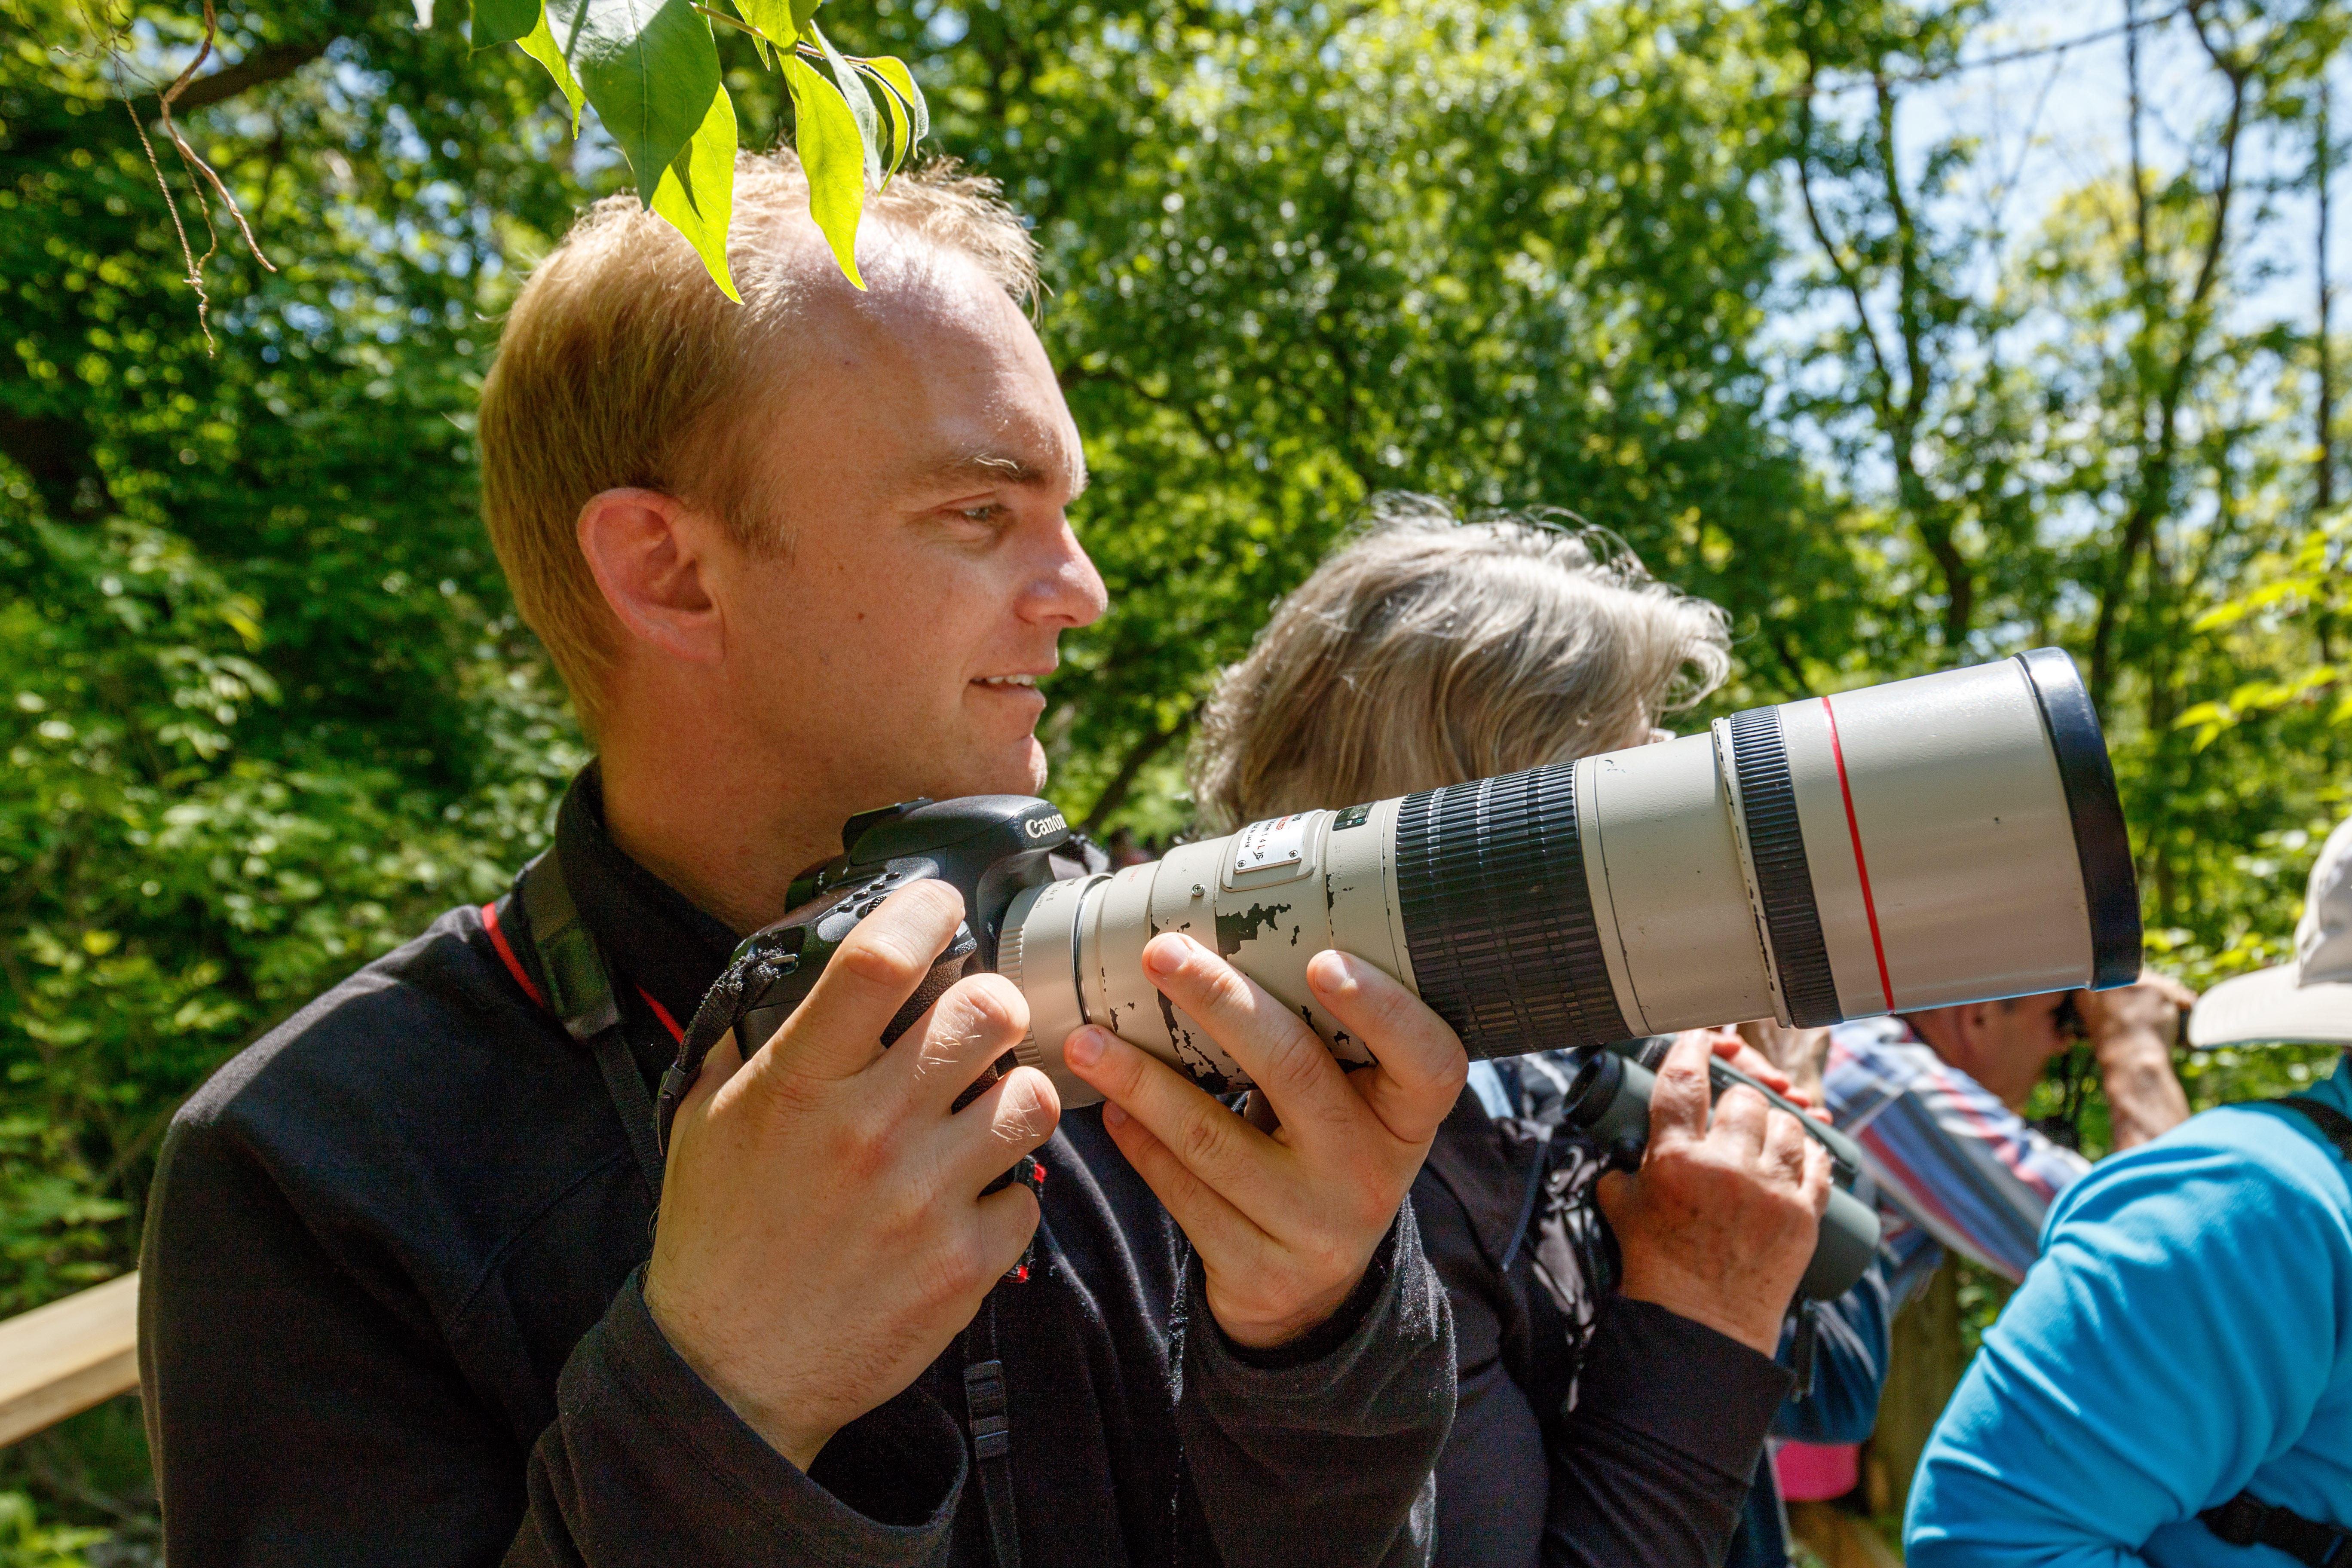 """Noah Strycker, a professional """"bird nerd"""" from Oregon, saw a record 6,042 birds in 365 days of birding around the world in 2015. He's chronicling the trip in a book, """"Birding Without Borders."""""""